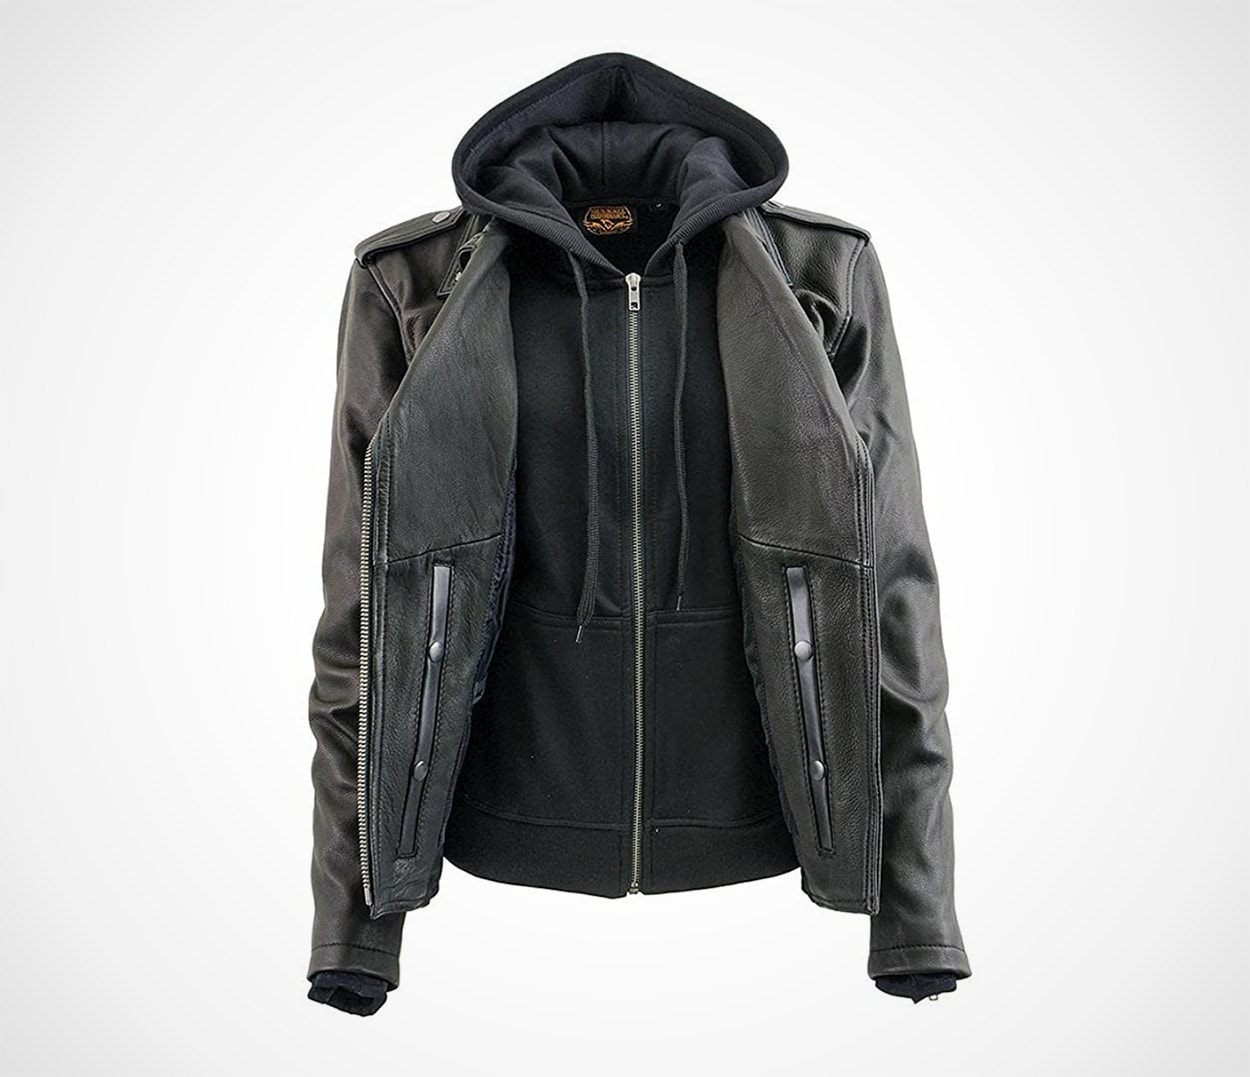 Milwaukee Leather Women's Black Vented MC Jacket with Removable Hoodie